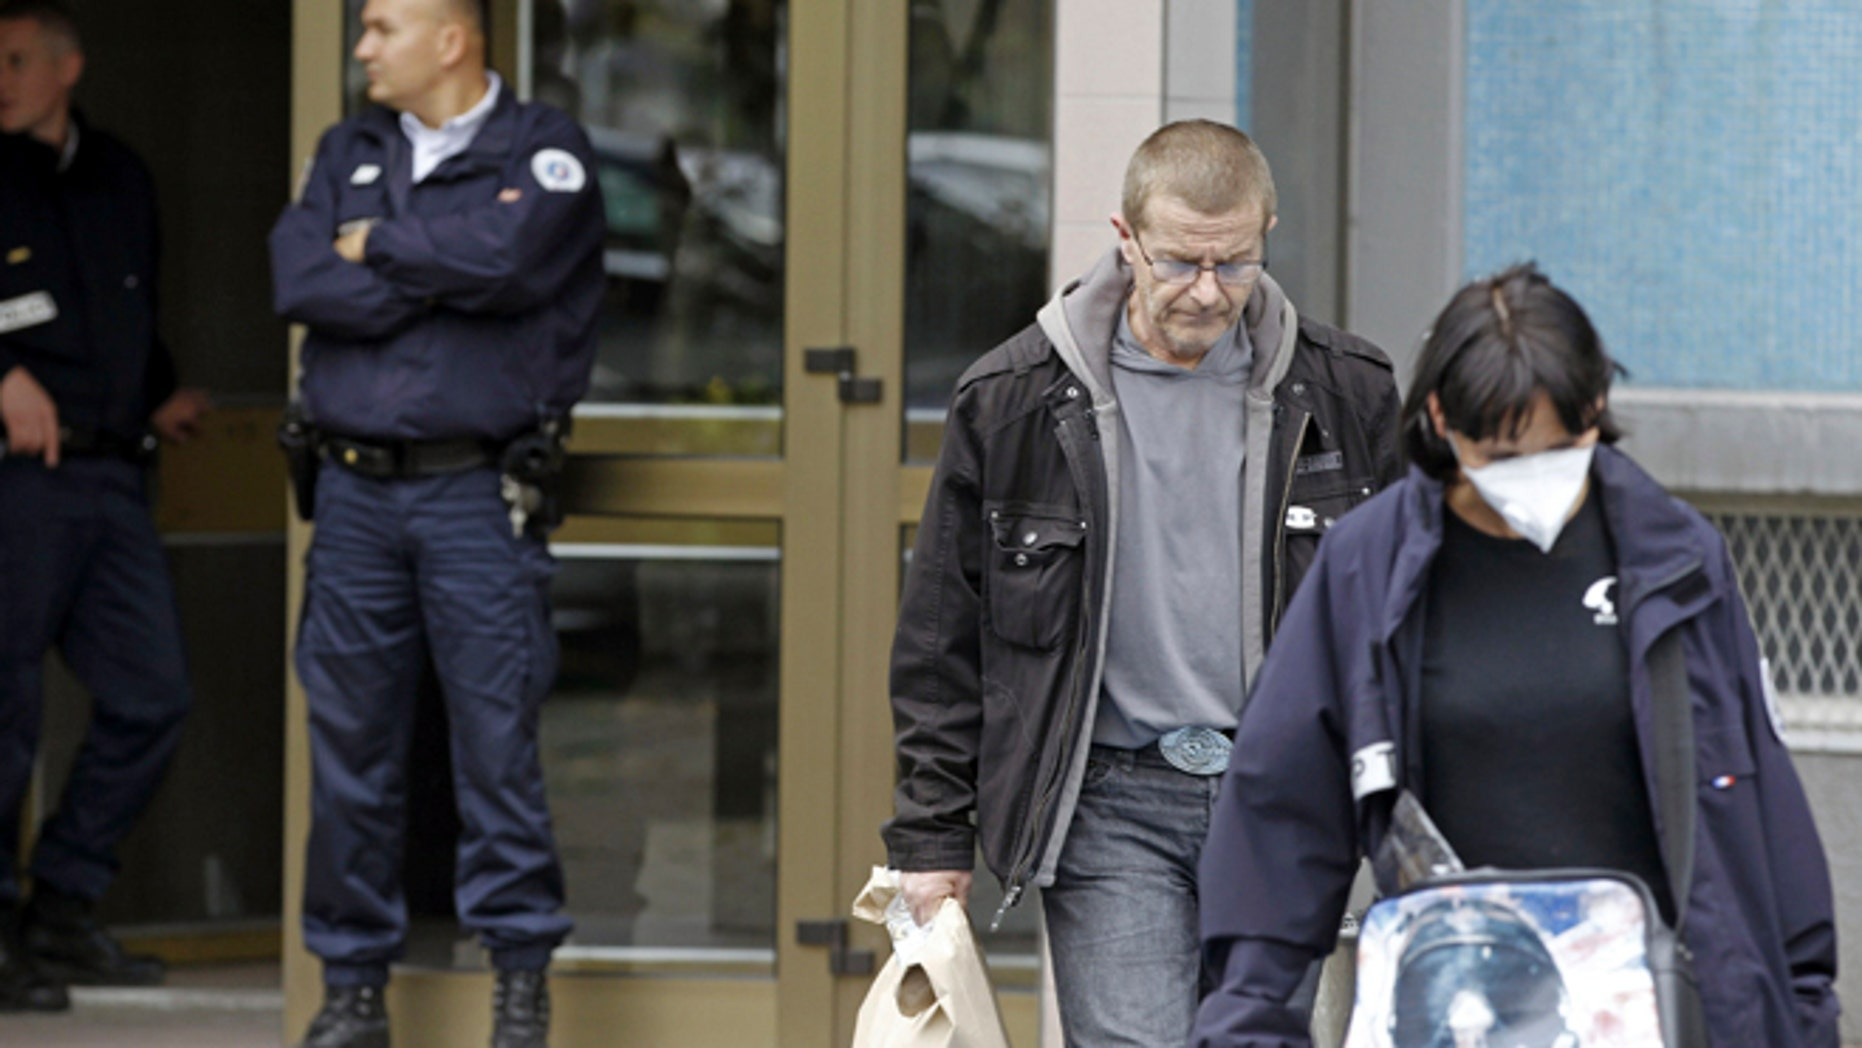 Oct. 6, 2012: French police officers, left, stand guard at the entrance of a building in Strasbourg, France, as plainclothed policemen carrying clues, right, leave, after a suspect was shot dead for firing at police.